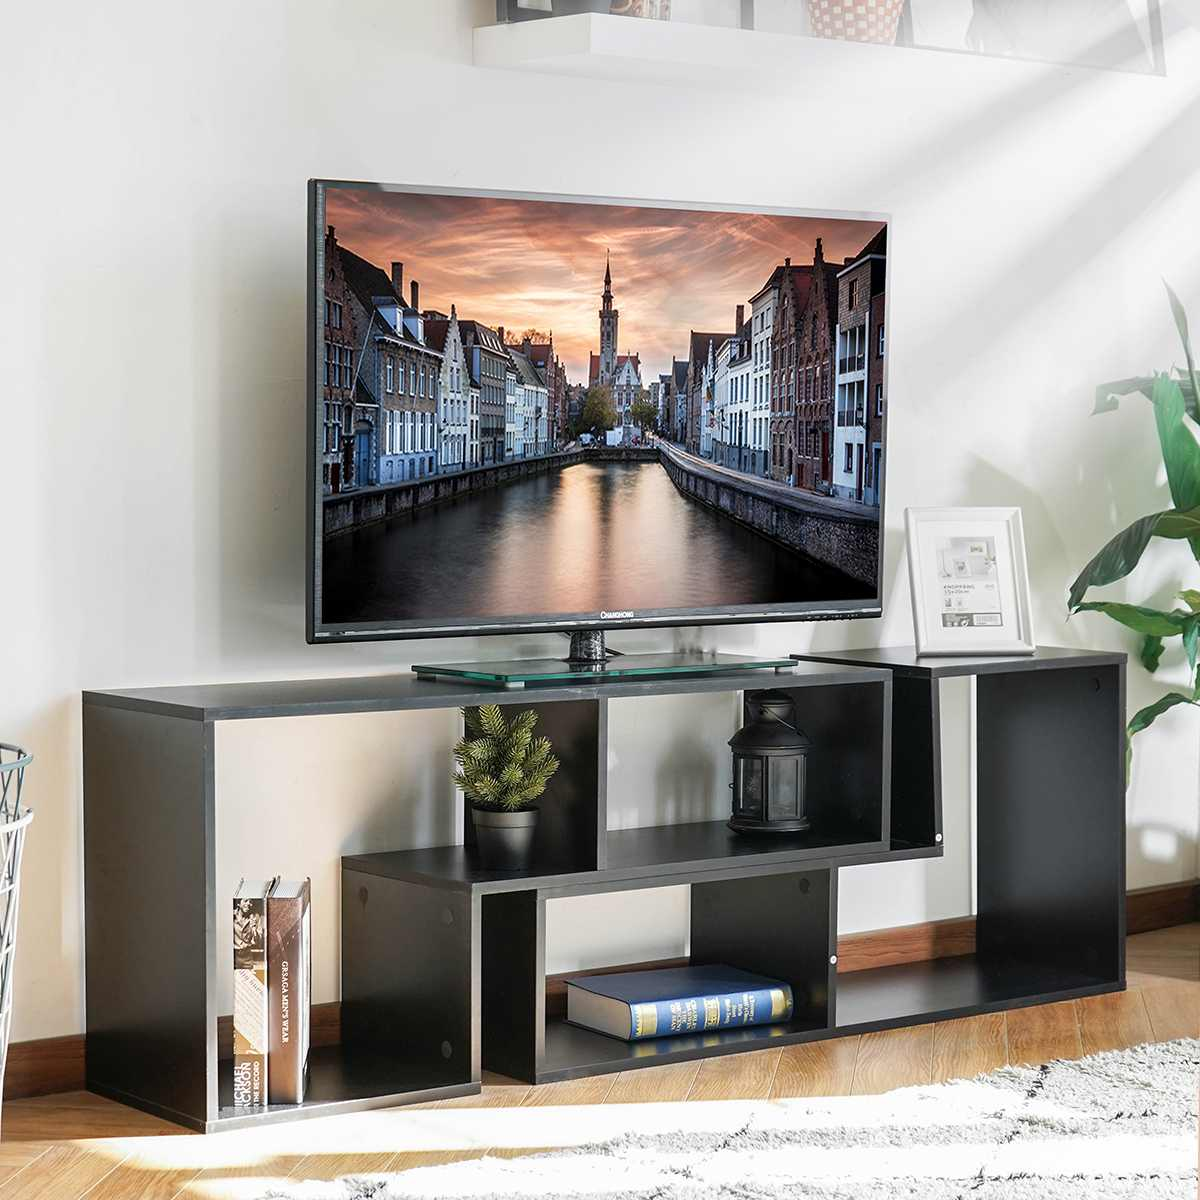 Portable Detachable TV Stand Cabinet Console For Living Room White Wood Black Table TV Cabinet US Shipping